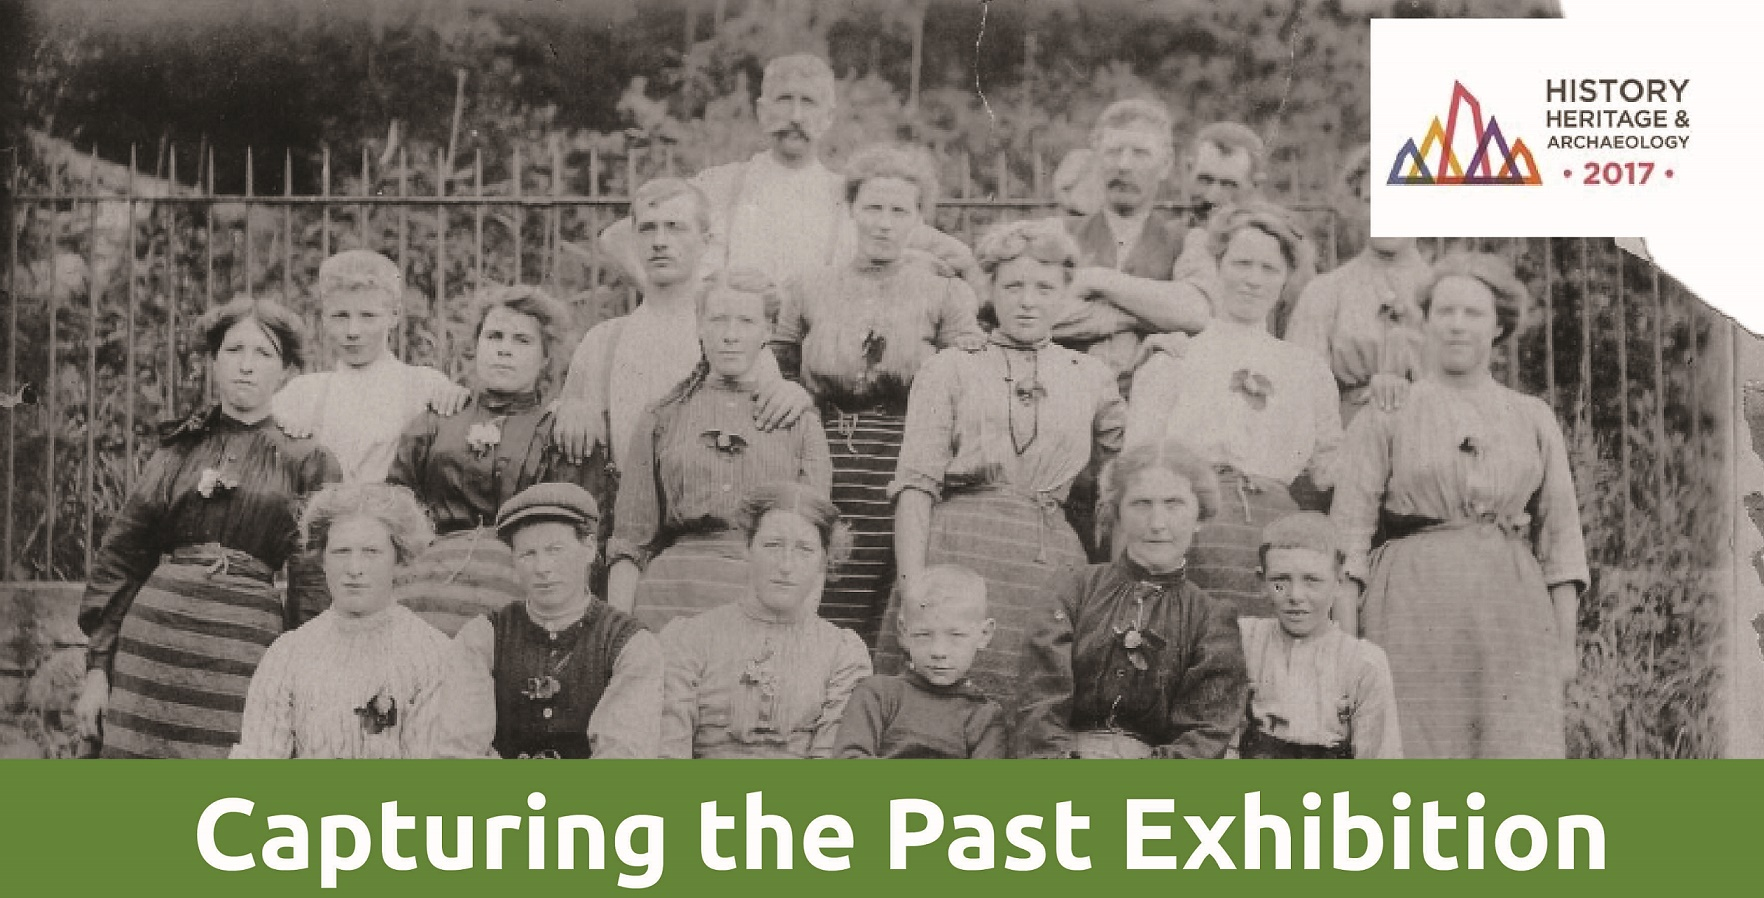 Capturing the Past Exhibition to launch in Rosebank, Saturday 25 March - Saturday 8 April